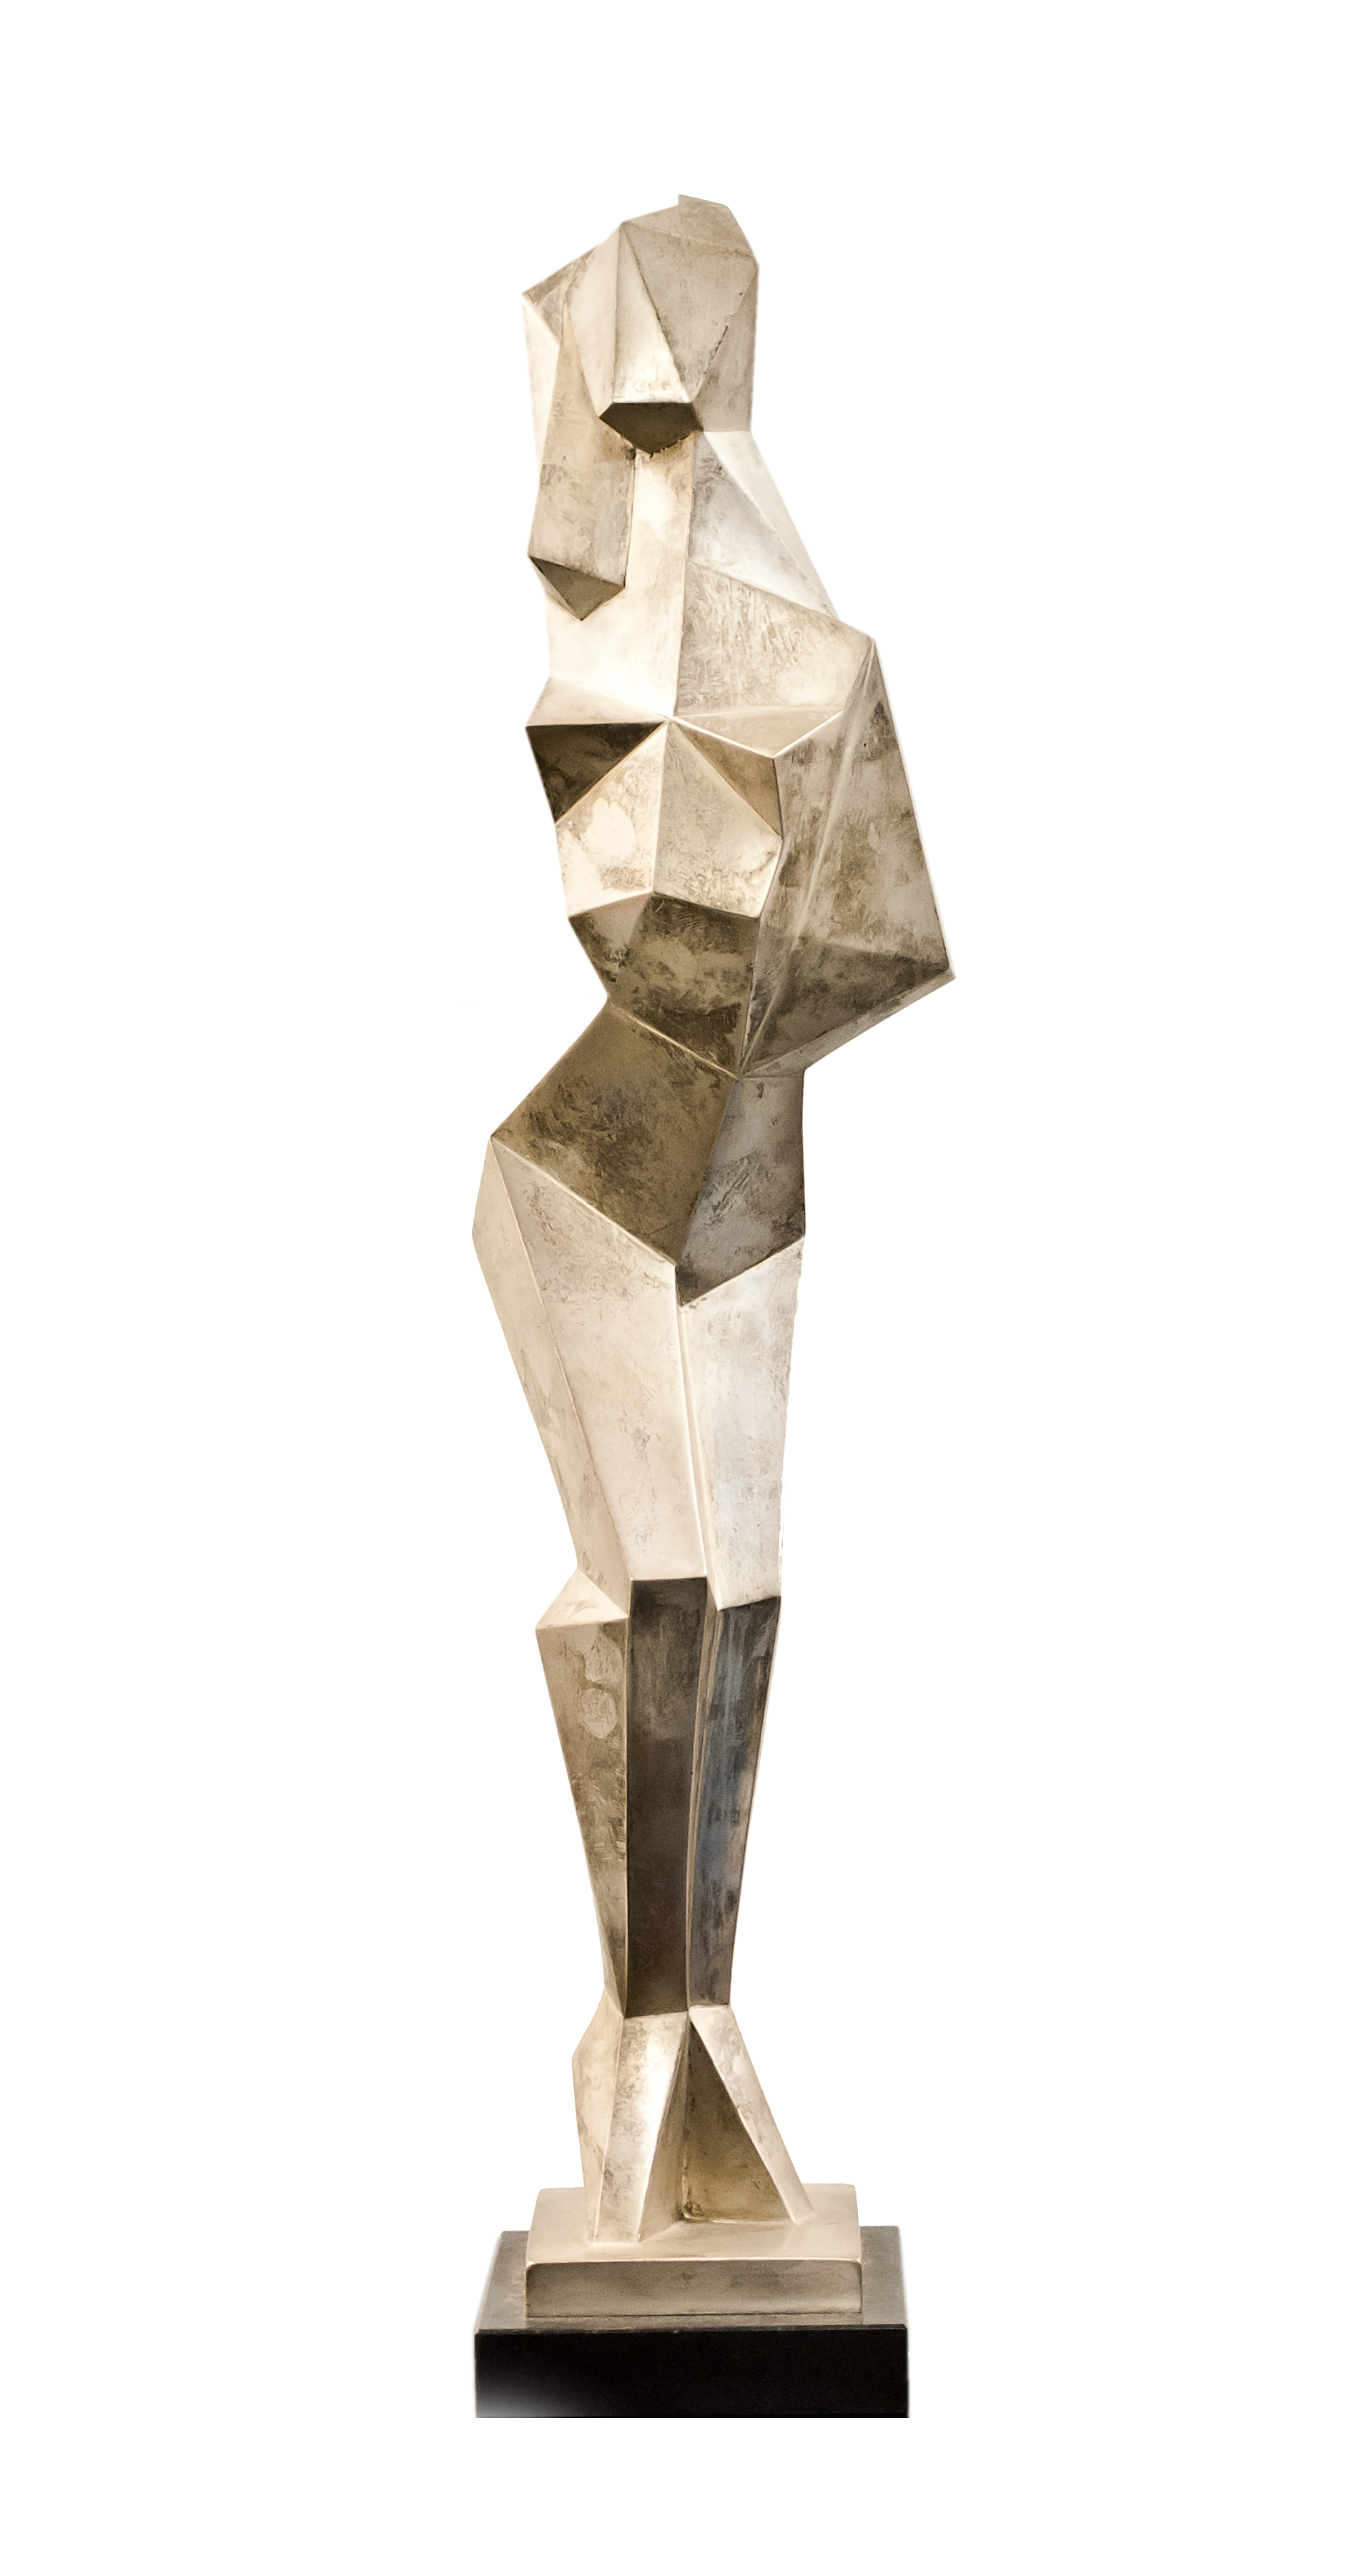 Cubist Nude 102, ed. 2/8,  1994 Silver 18 x 3 1/2 x 3 1/2 inches